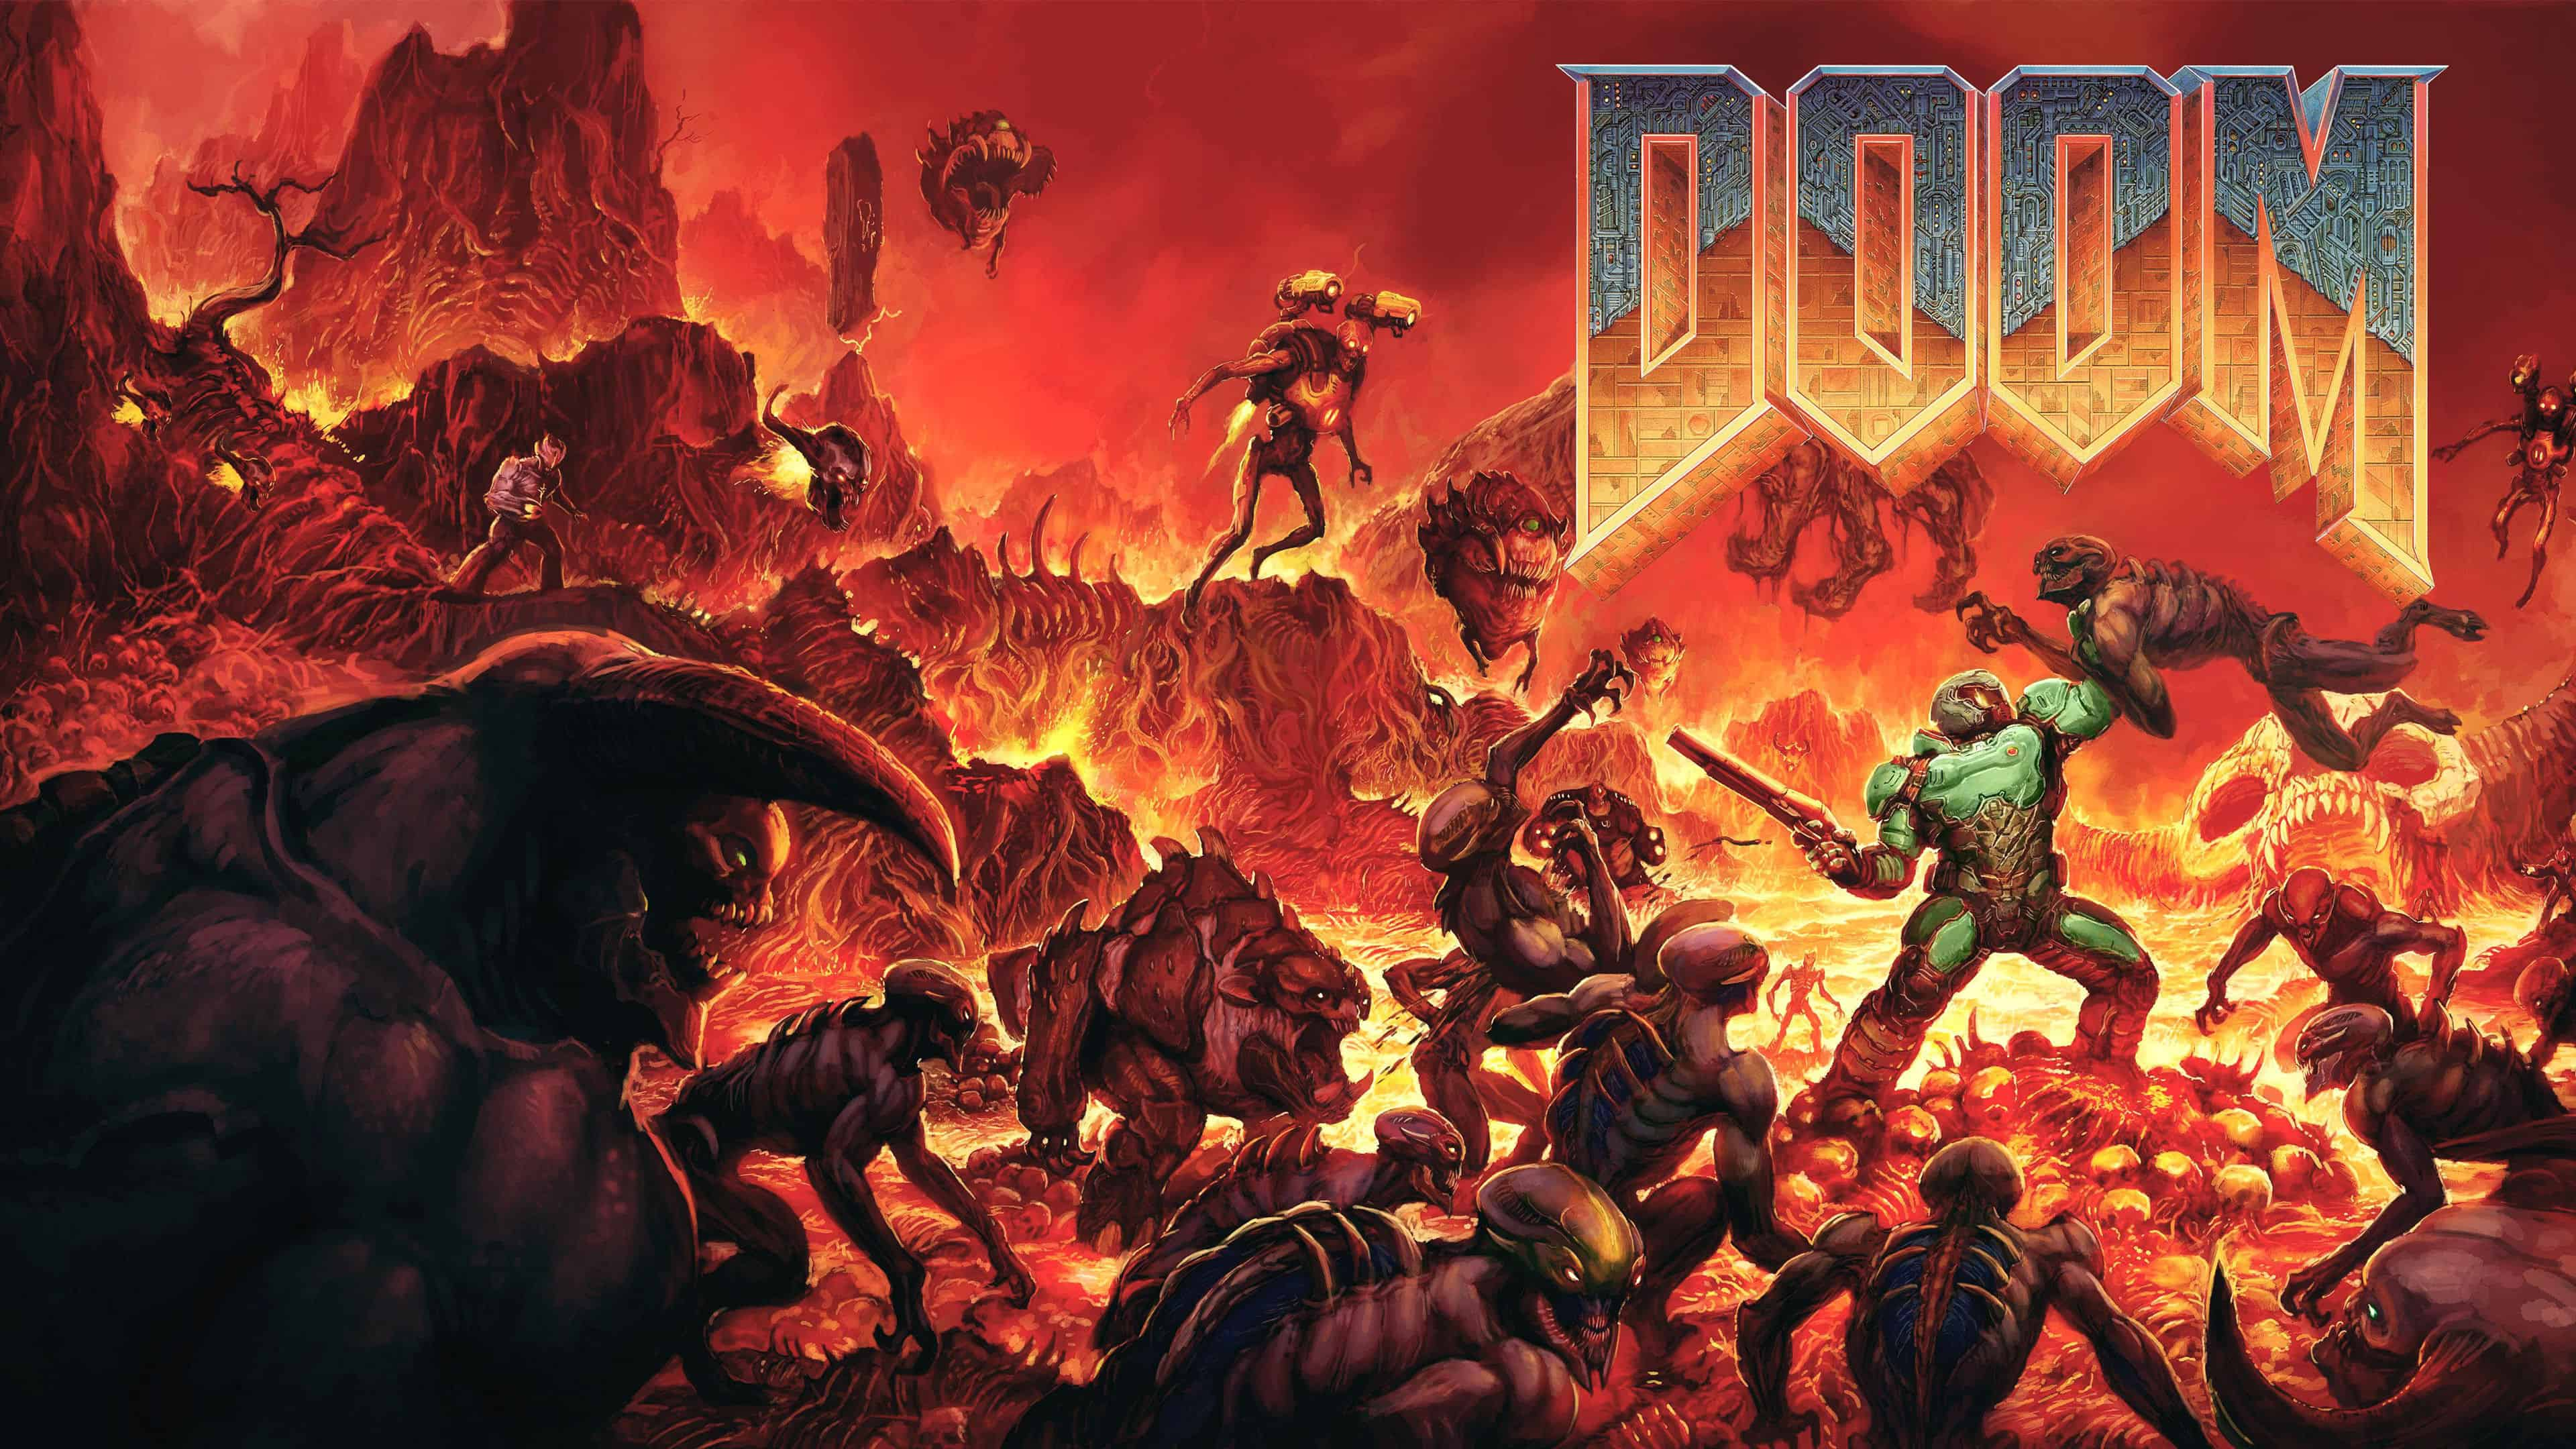 Ultra Hd Desktop Wallpapers Doom Original Cover Uhd 4k Wallpaper Pixelz